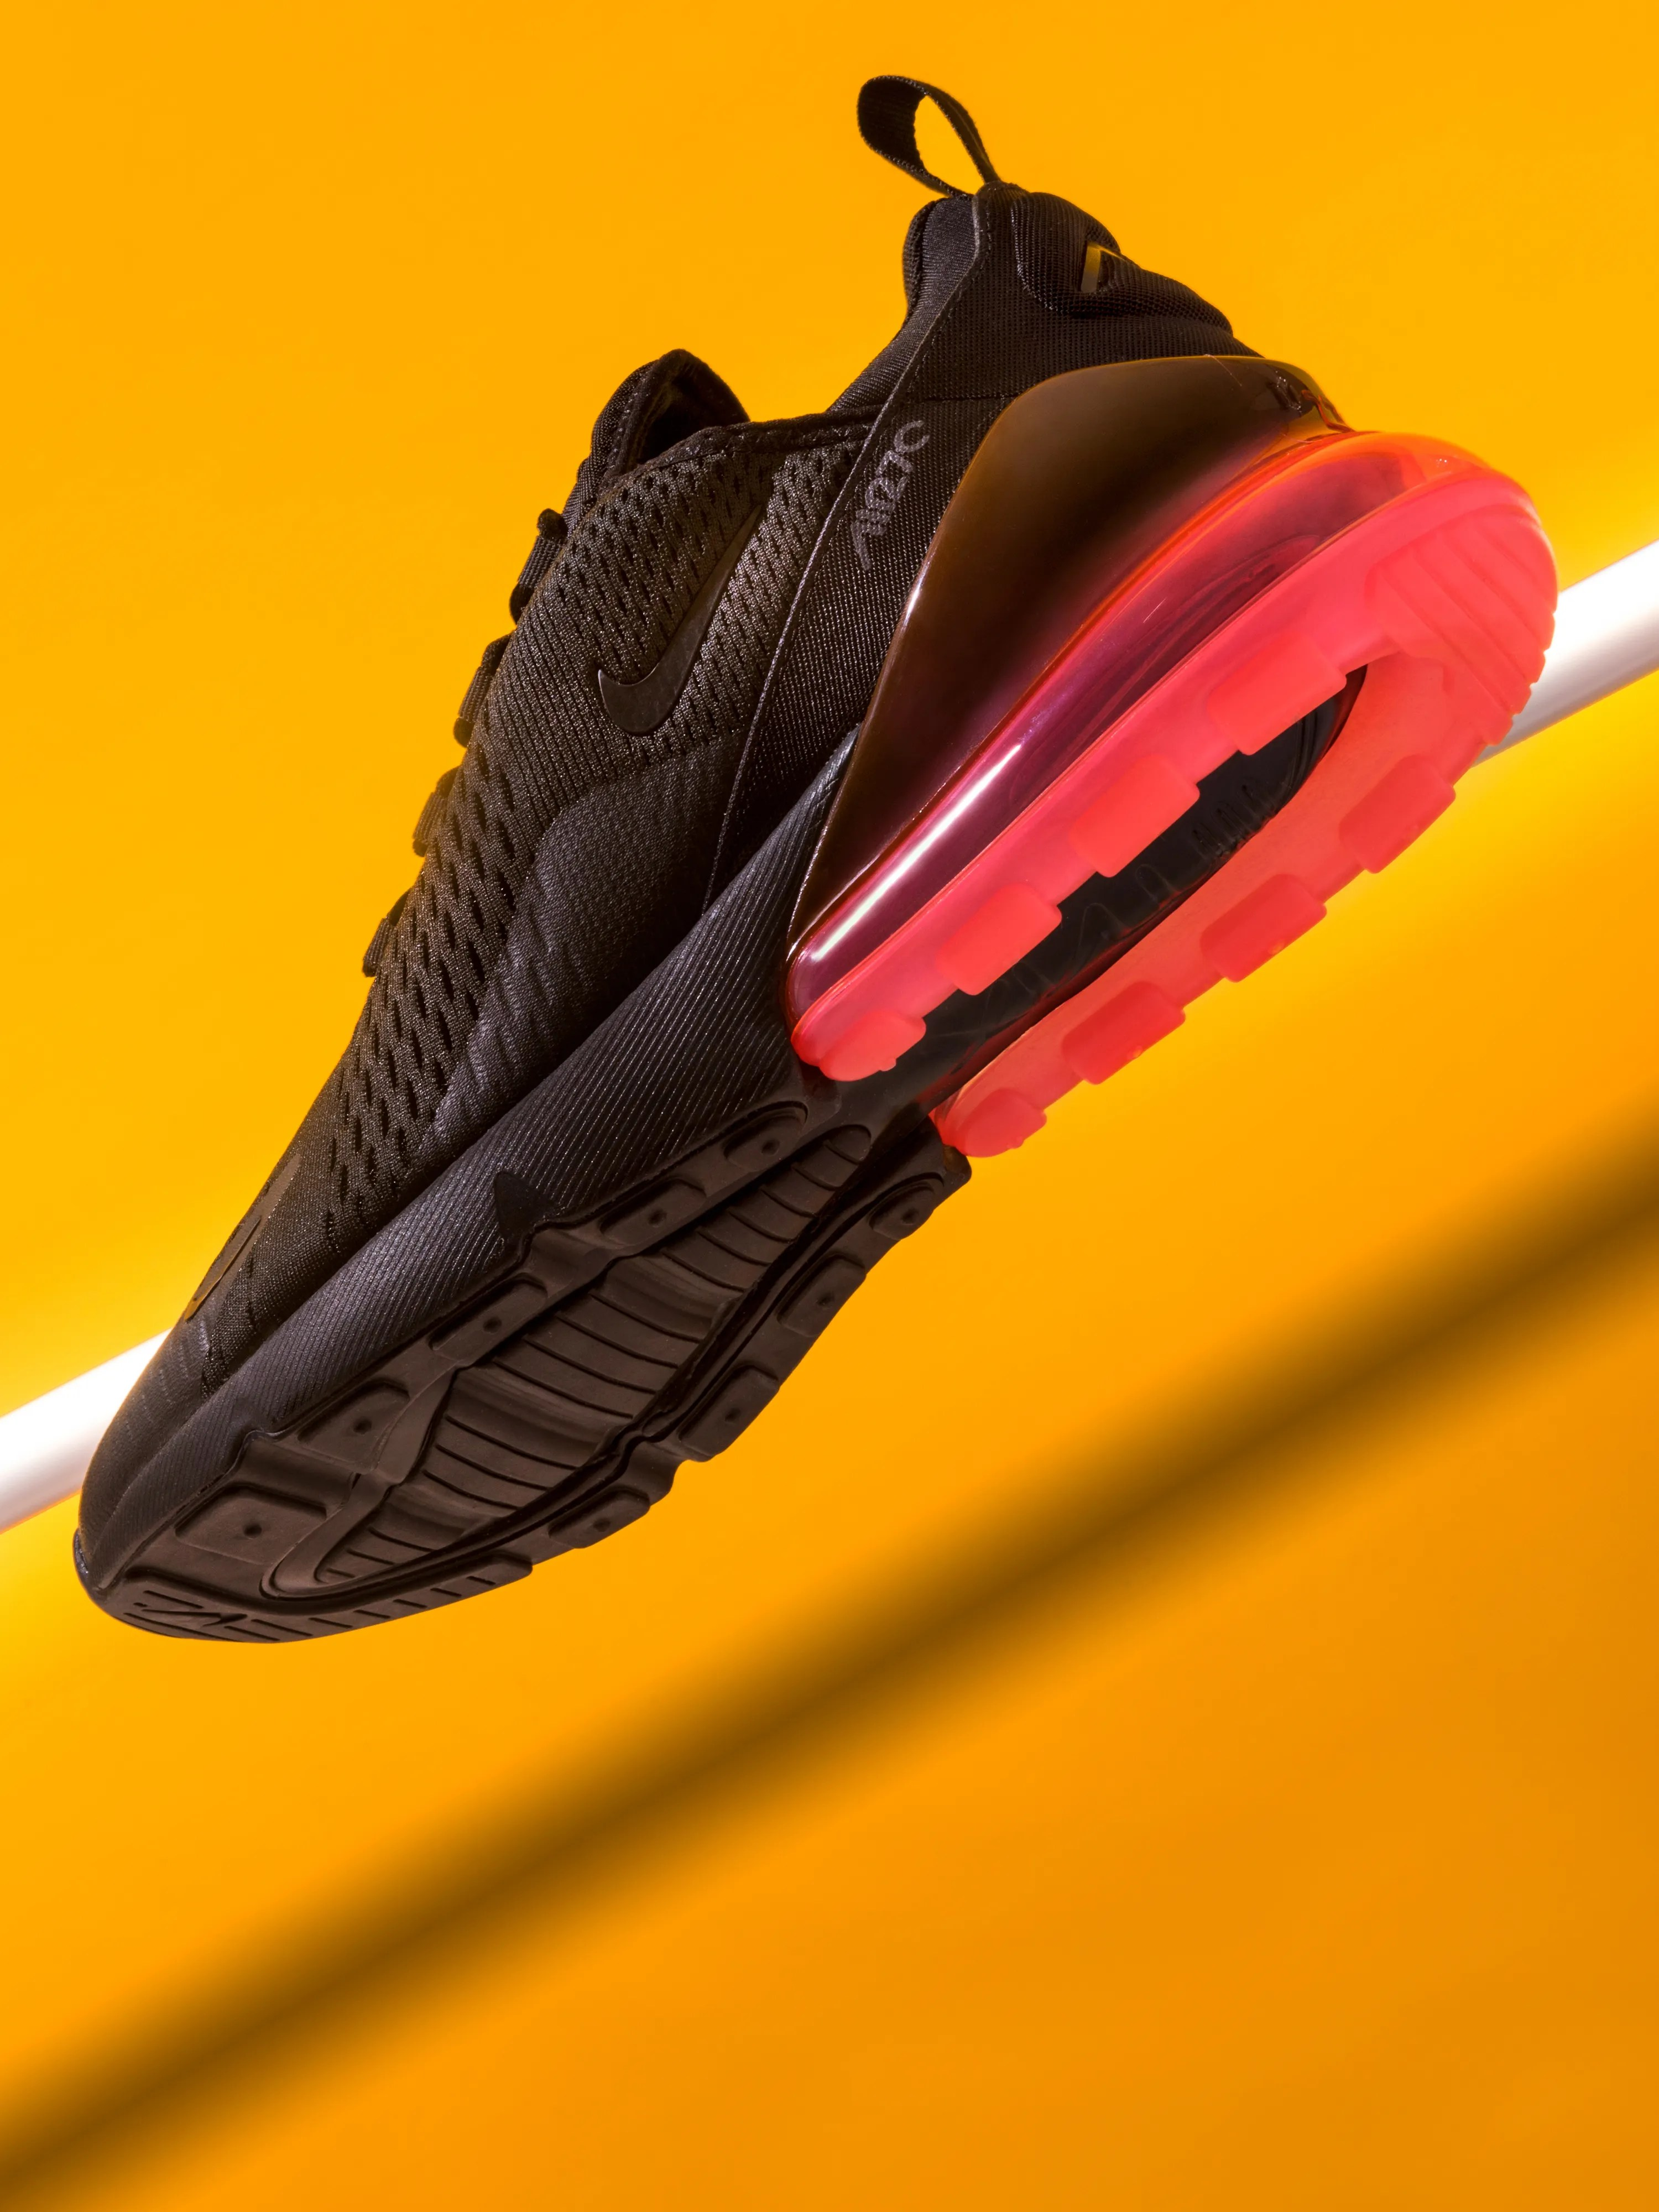 Nikes New Air Max 270 Sneaker Is The Best Of Old And New Gq